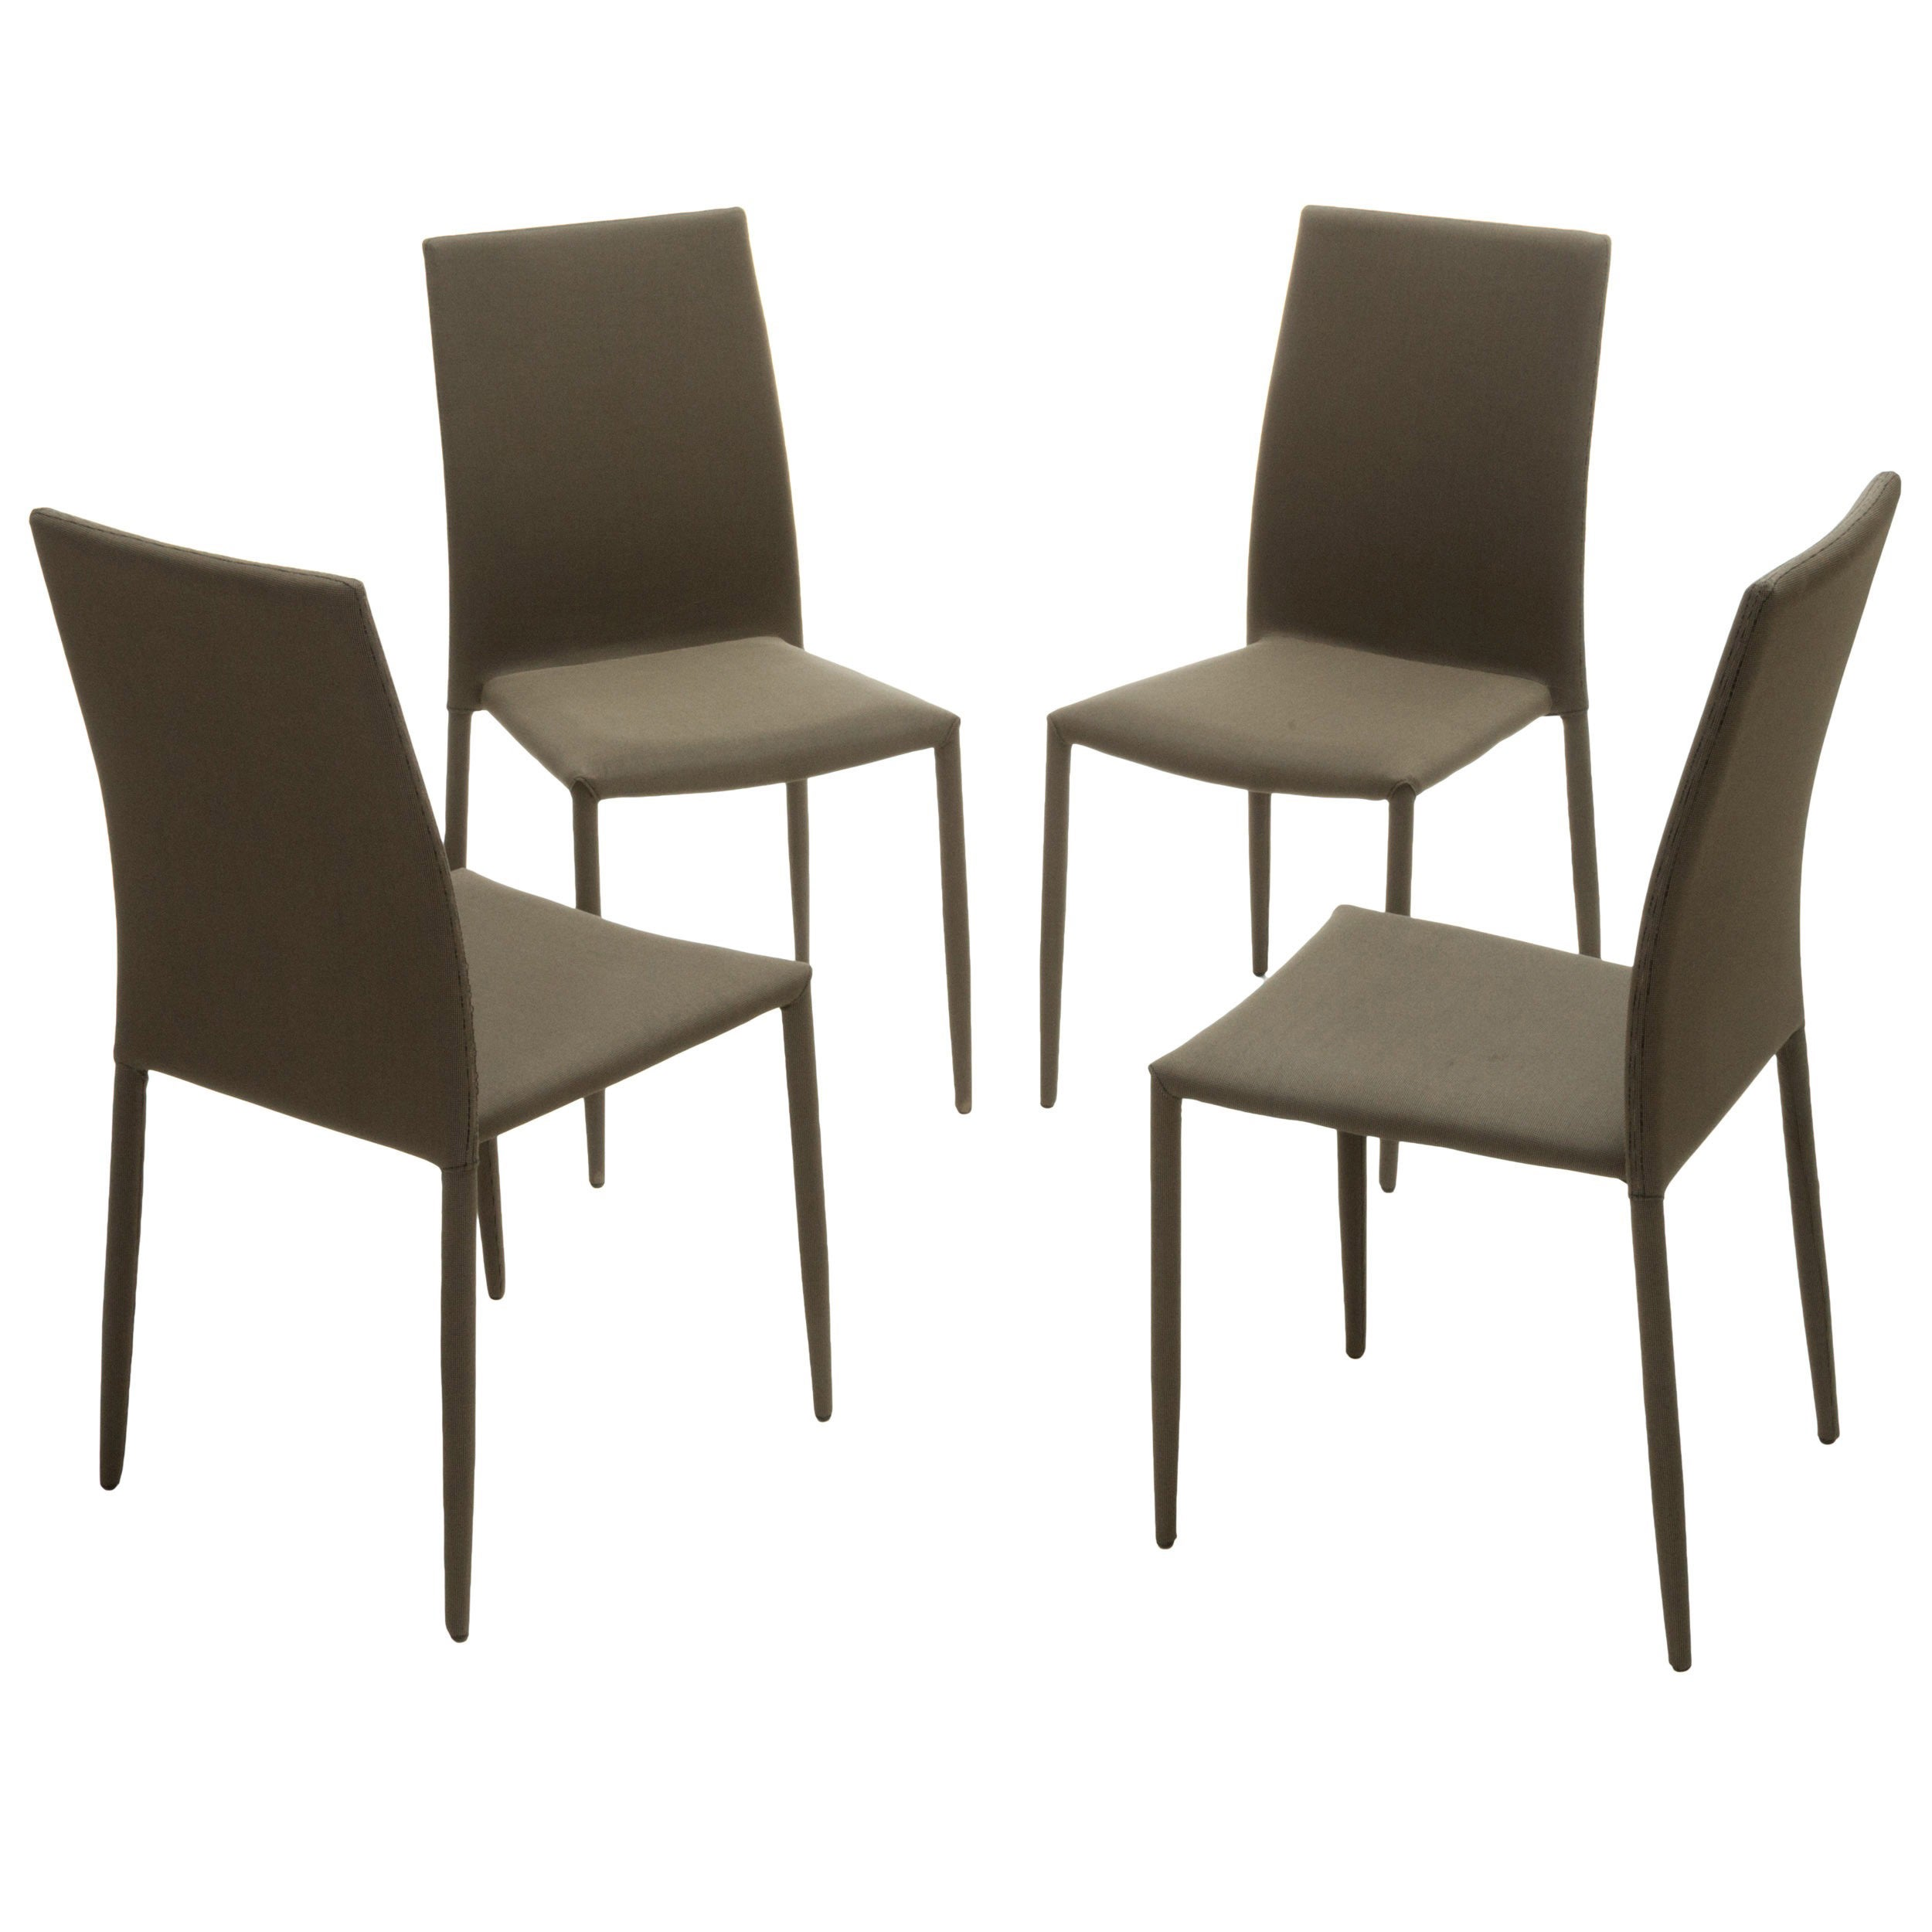 Shop christopher knight home wayfield dining chair set of 4 free shipping today overstock com 9275231